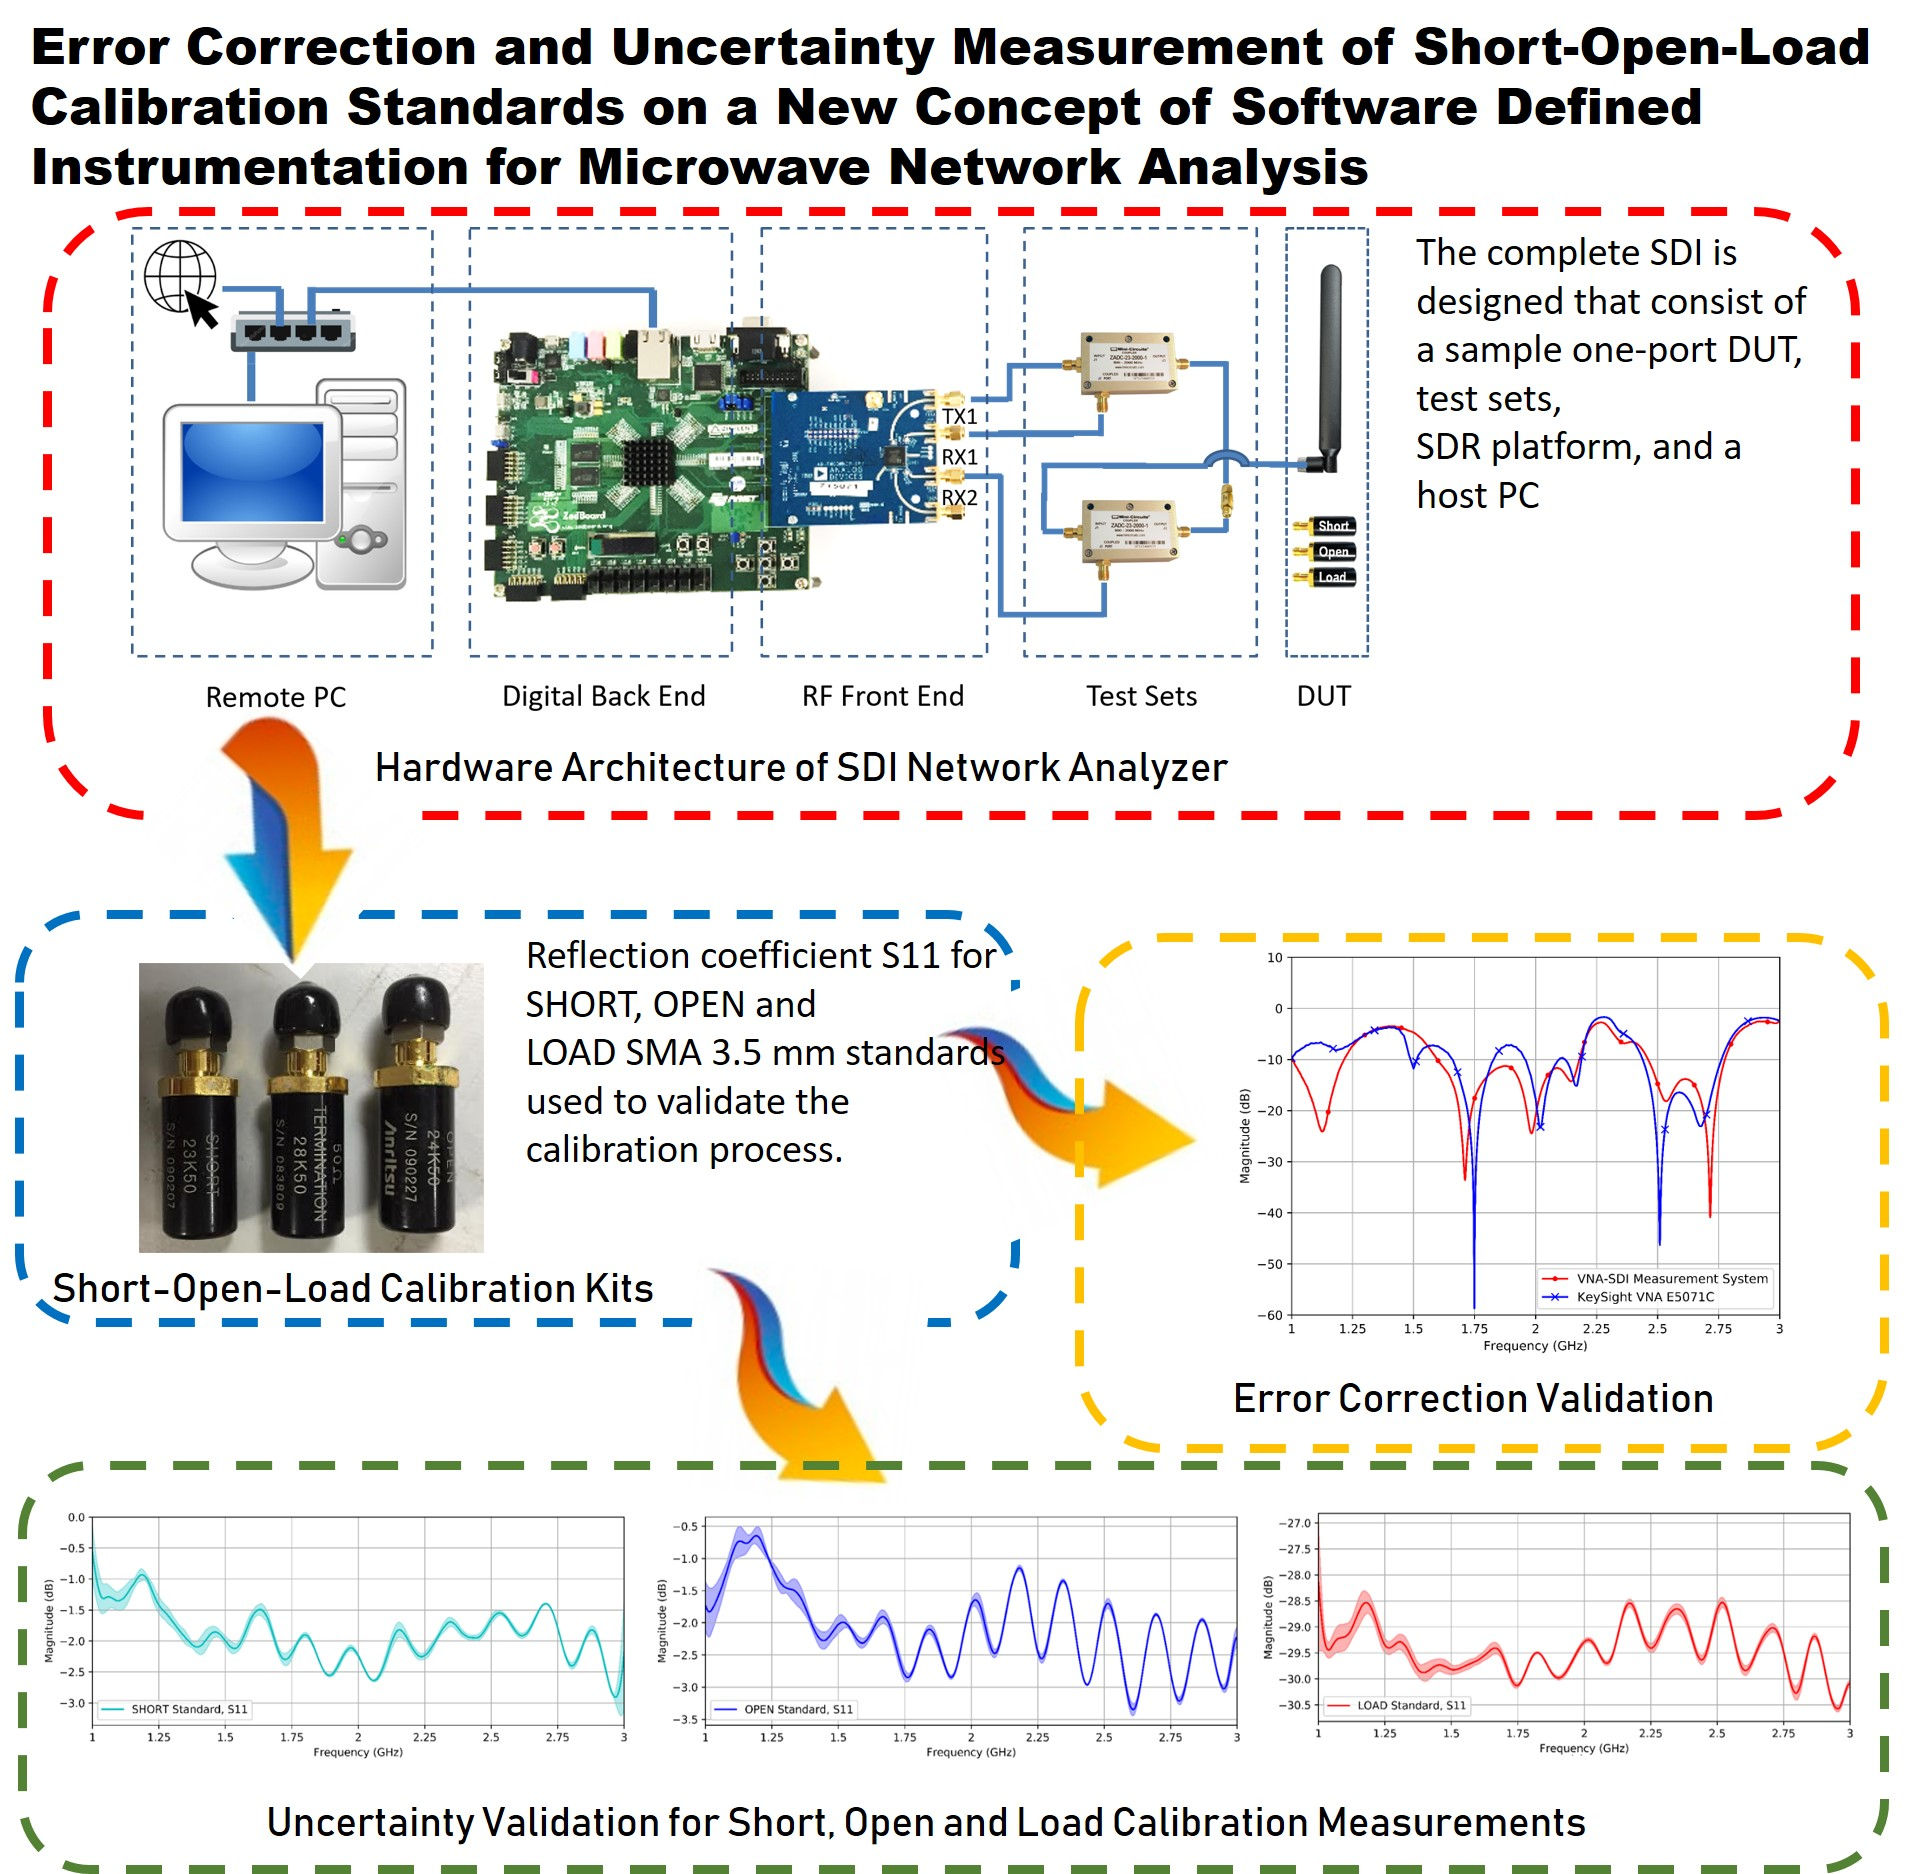 Error correction and uncertainty measurement of short-open-load calibration standards on a new concept of software defined instrumentation for microwave network analysis